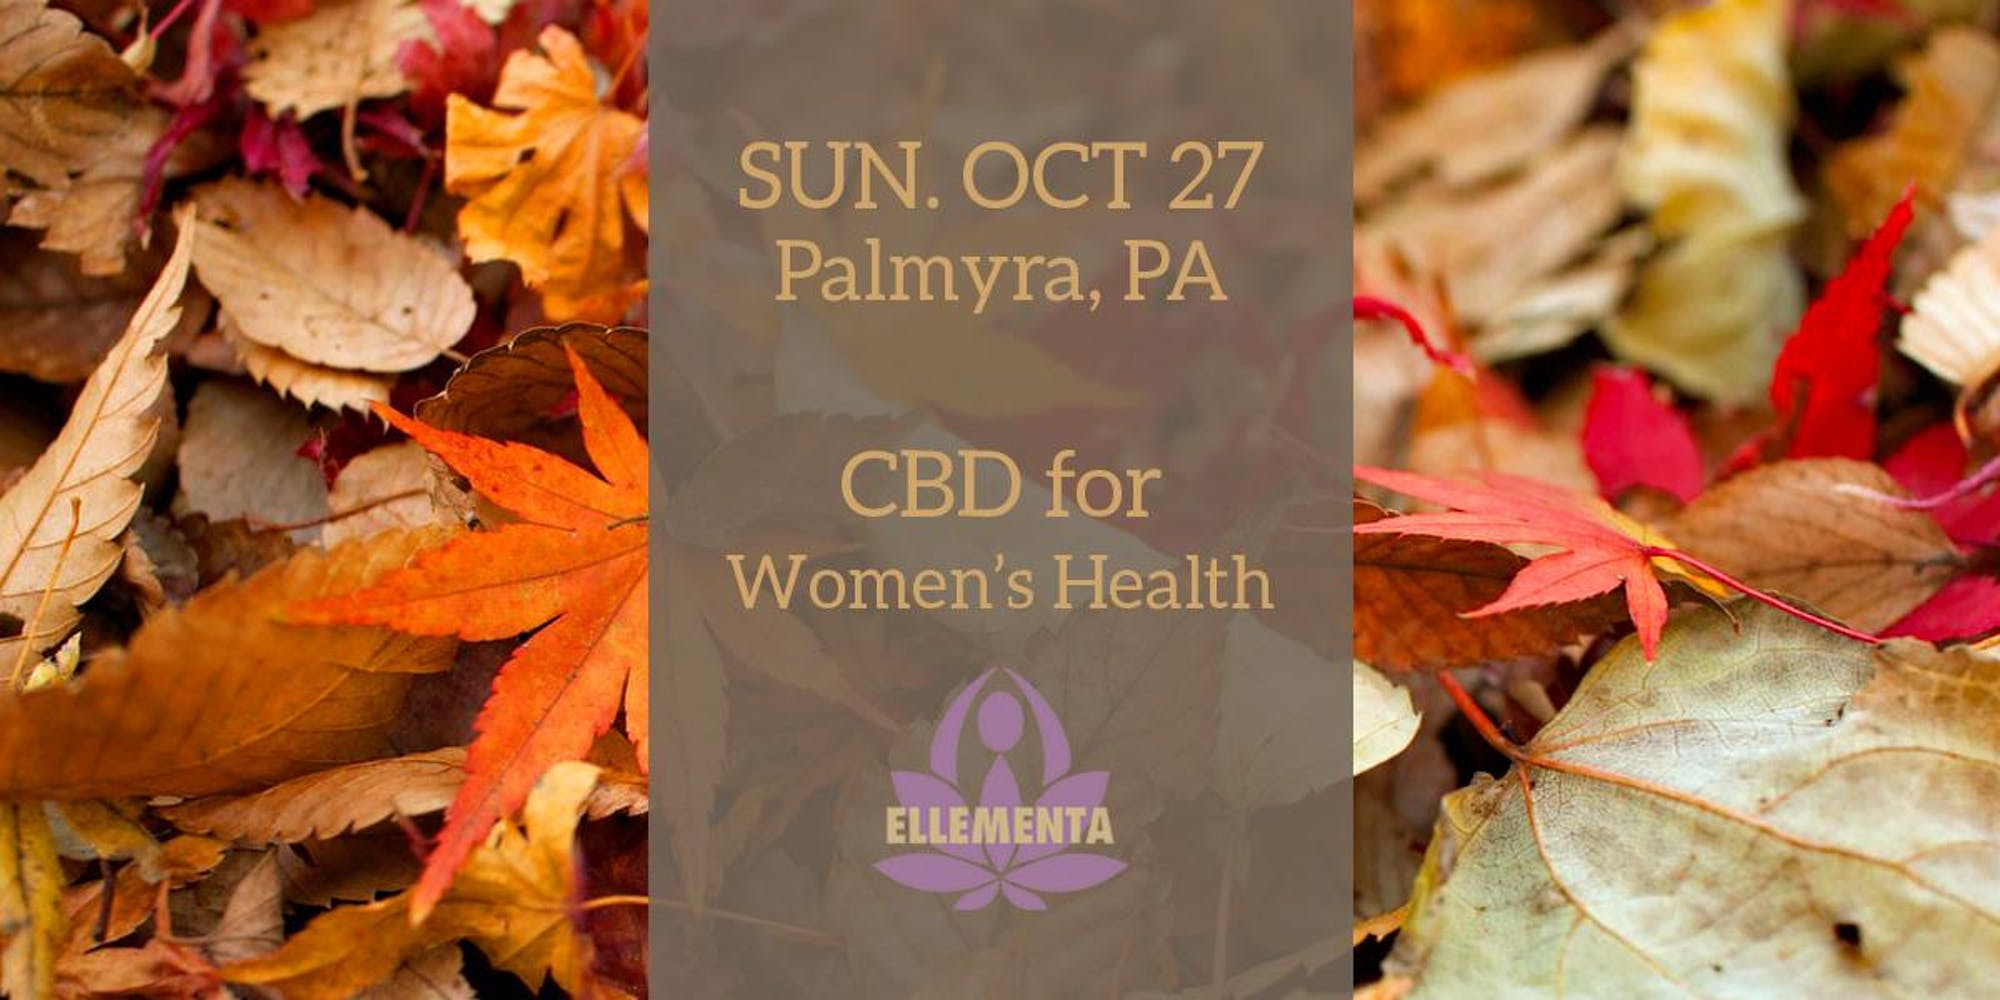 Ellementa Central PA: CBD for Women's Health